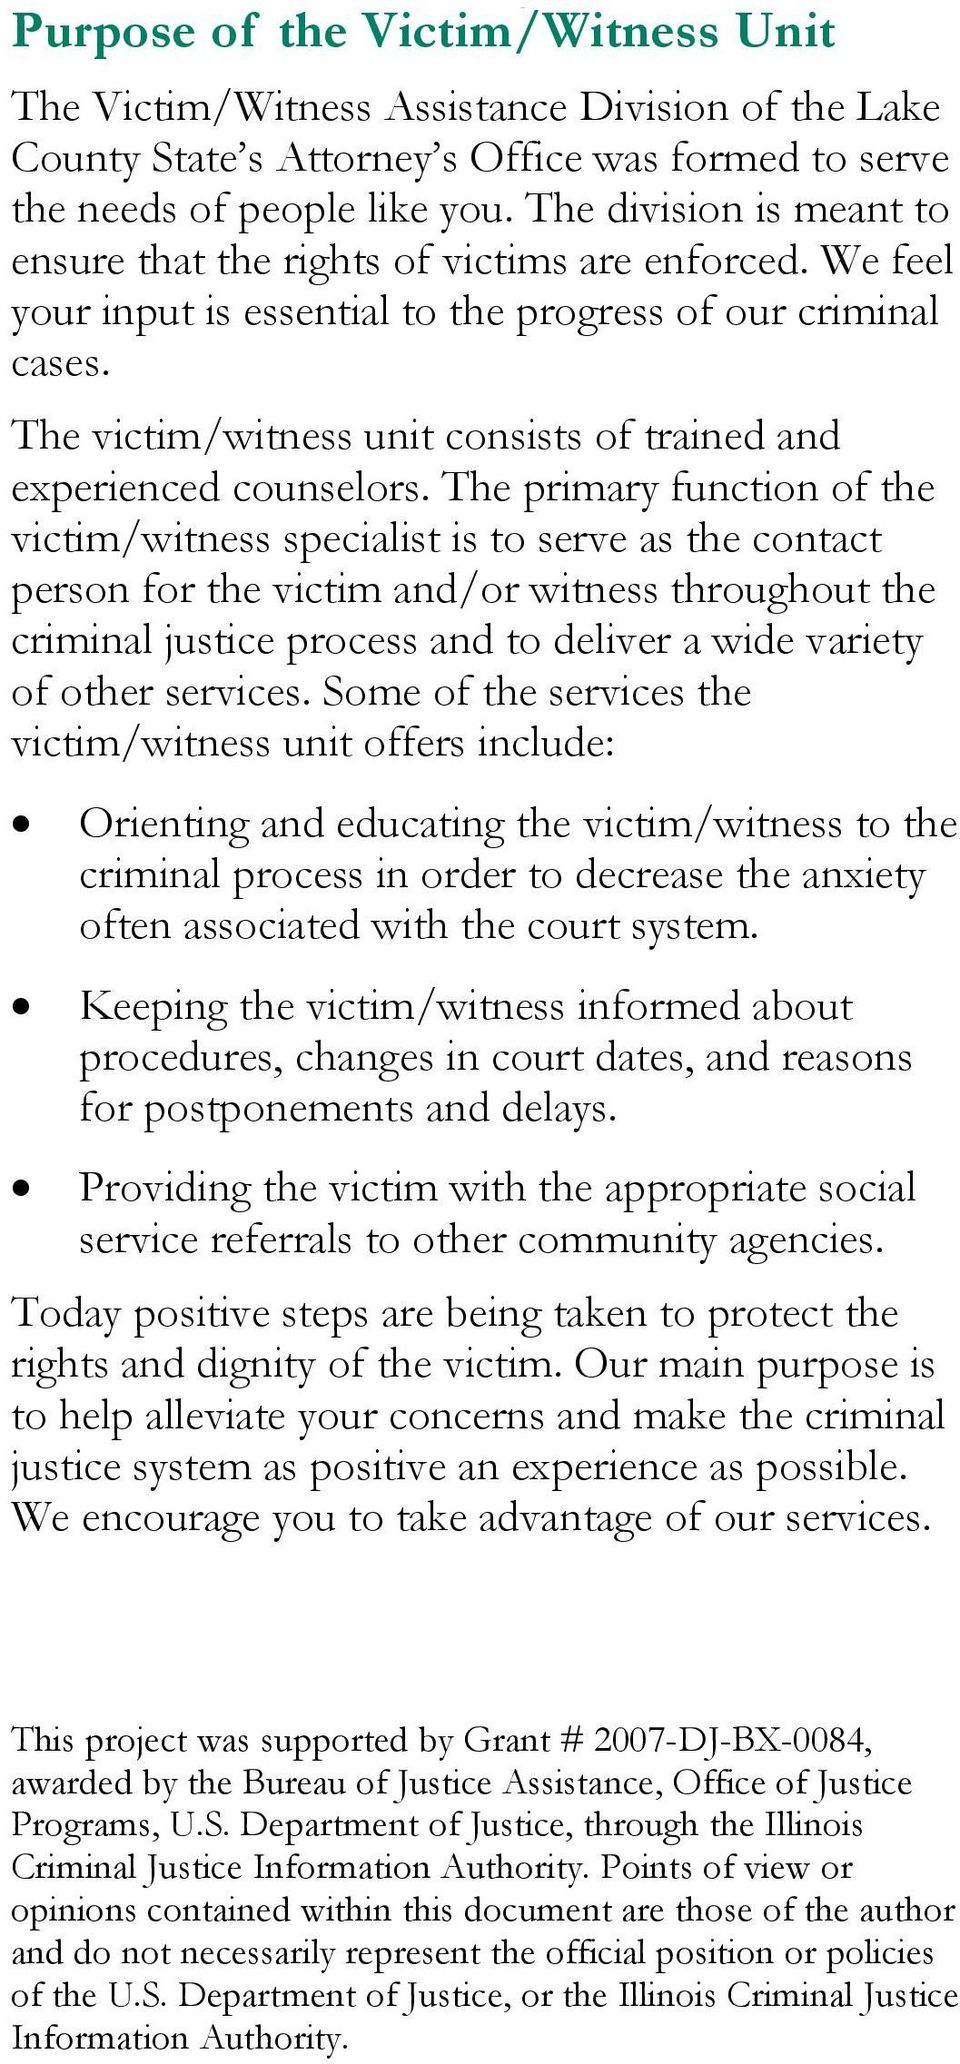 The victim/witness unit consists of trained and experienced counselors.